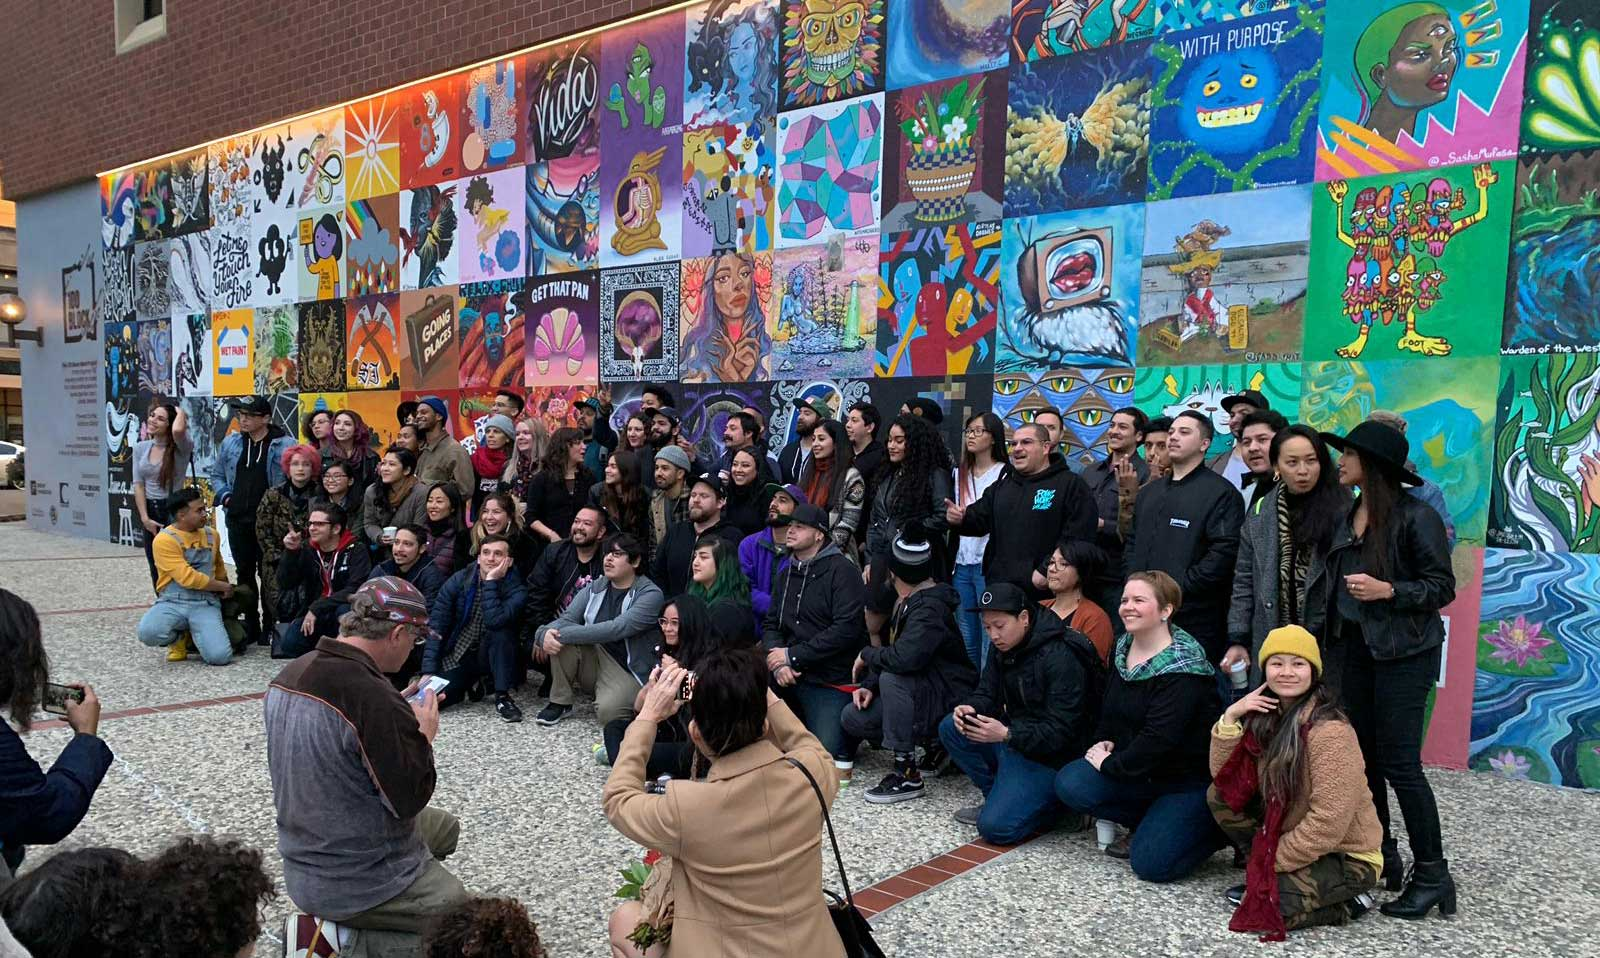 100 Block mural opening on March 1, 2019 • 300 South First St, San José